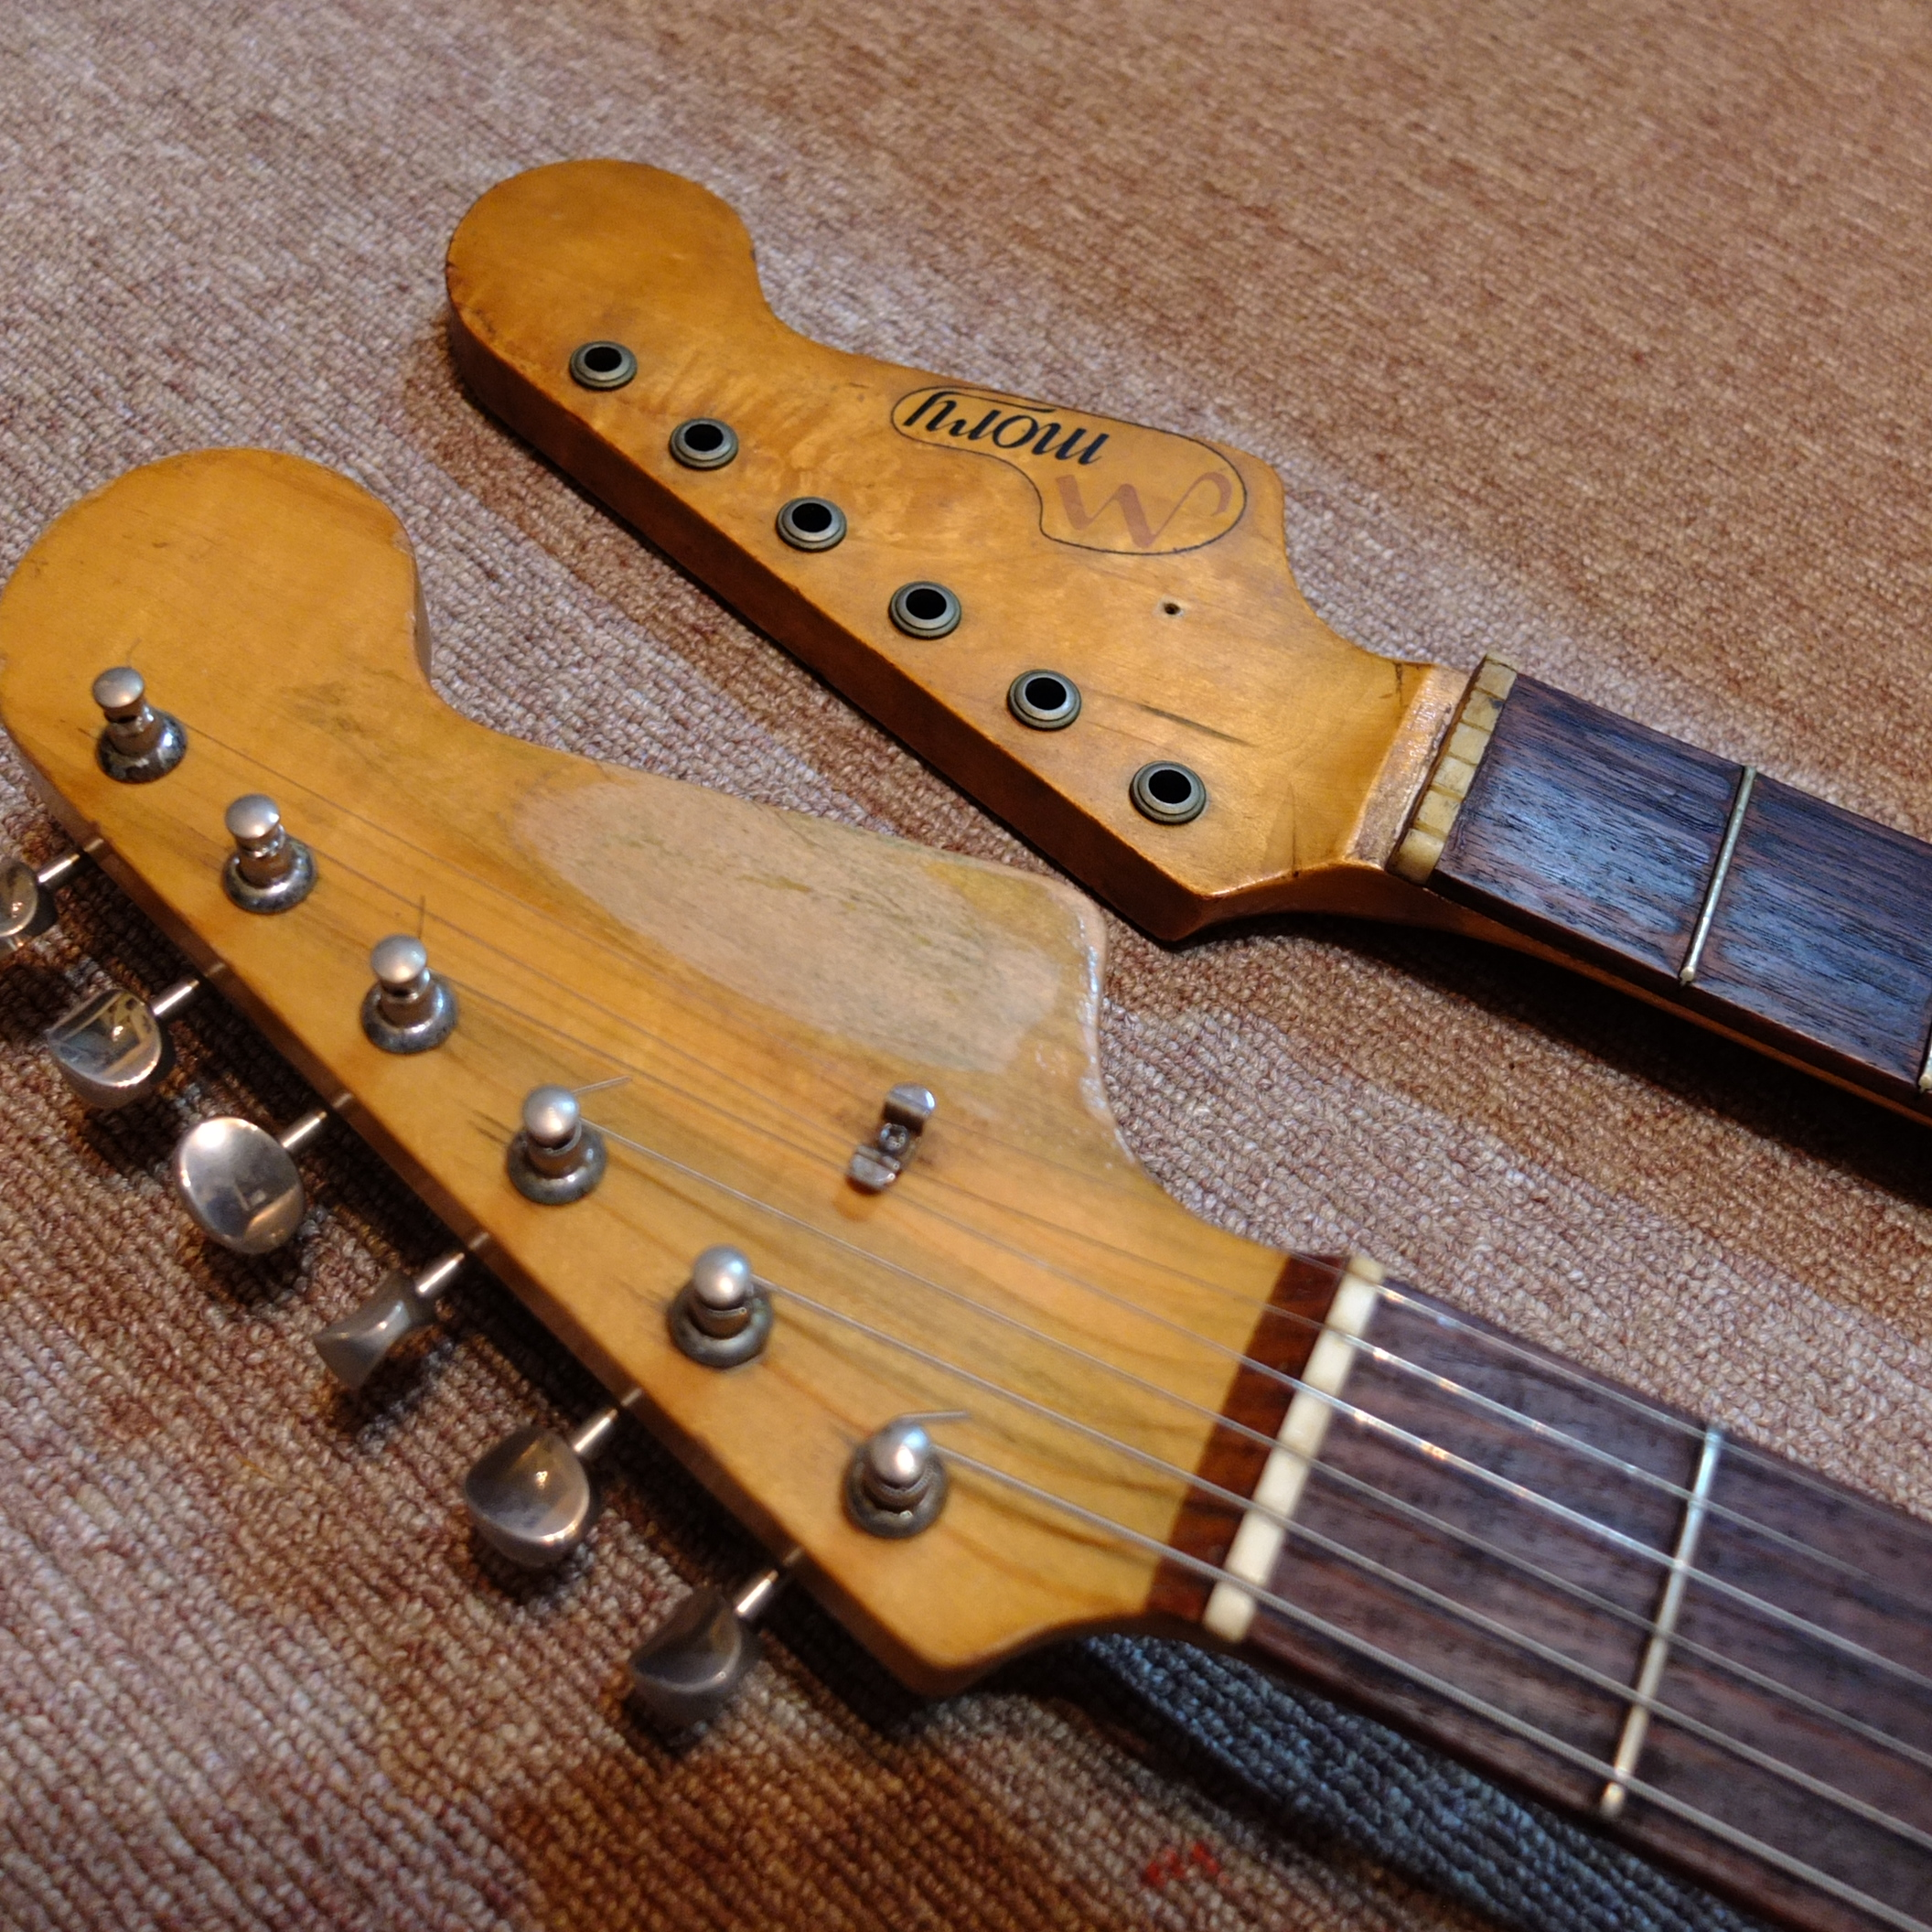 Mory Madness: An Obsession – Electric Deer Guitarworks